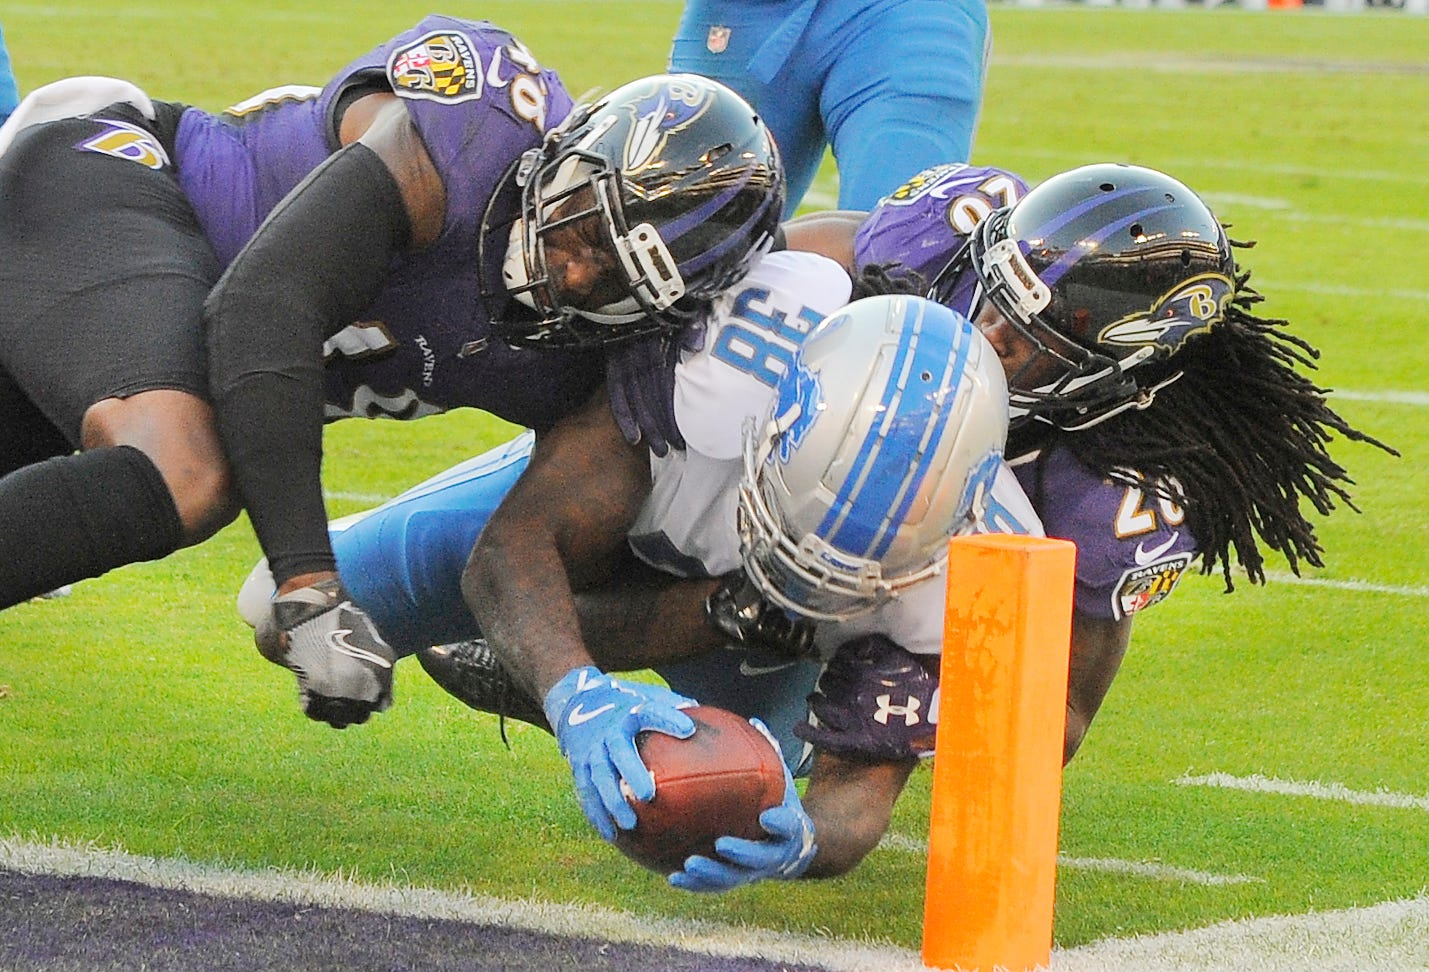 Lions rookie running back Tion Green dives into the